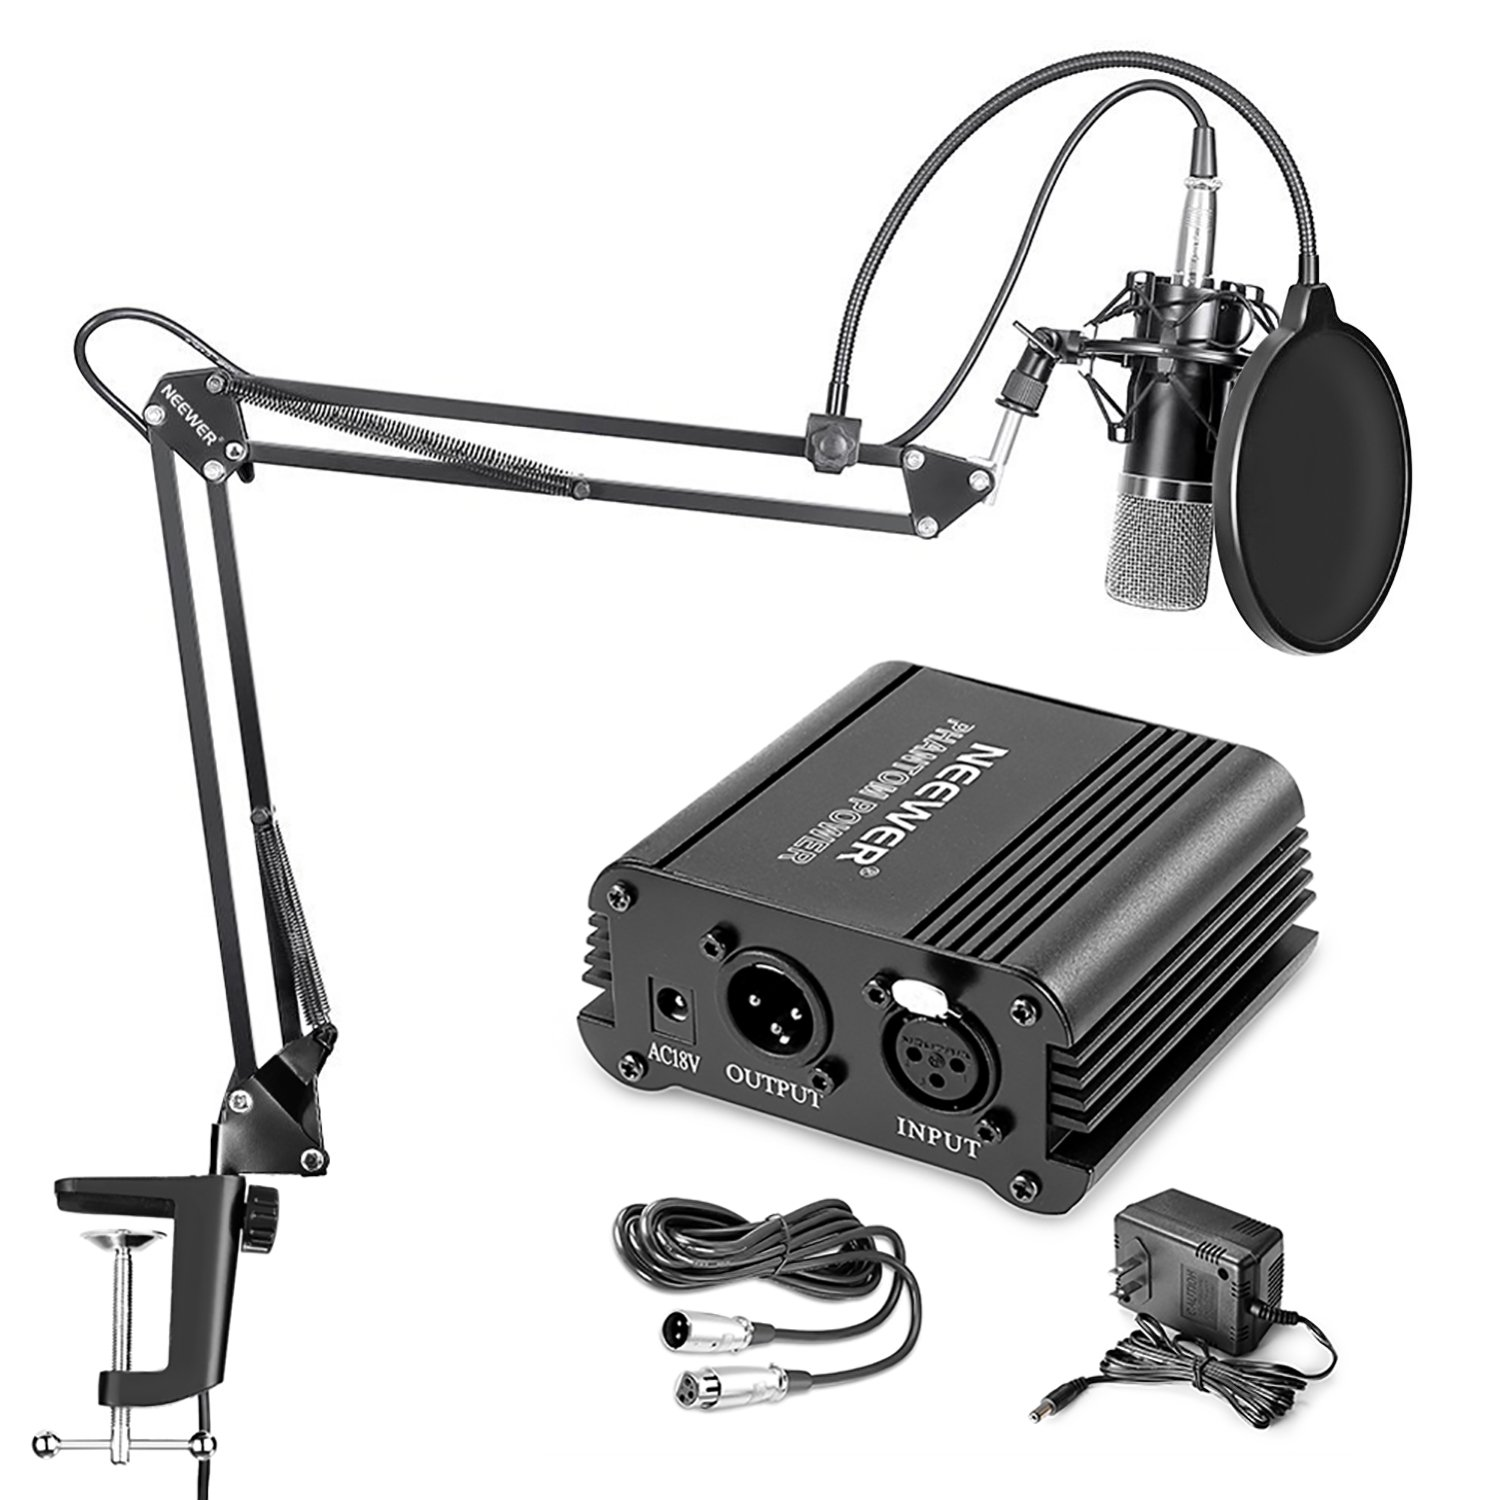 Neewer NW-700 Professional Studio Broadcasting Recording Condenser Microphone & NW-35 Adjustable Recording Microphone Suspension Scissor Arm Stand with Shock Mount and Mounting Clamp Kit B00XOXRTX6